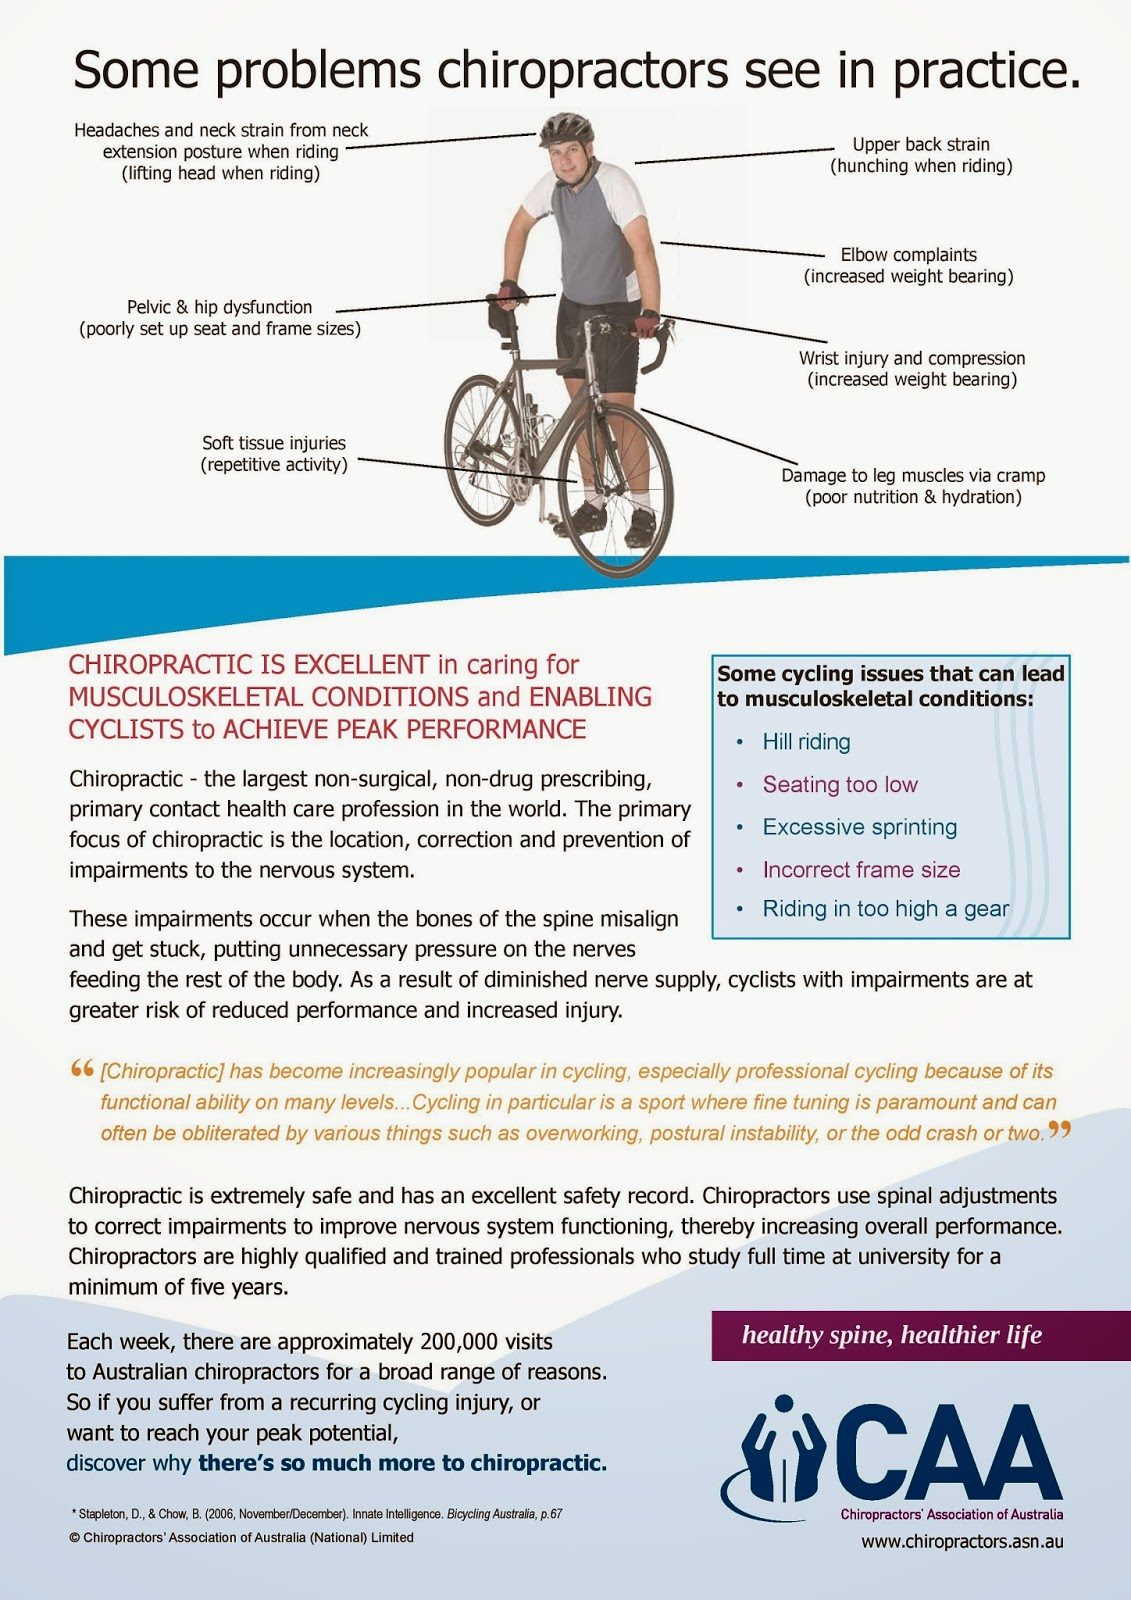 http://www.chiropractors.asn.au/images/stories/Files/Chiropractic%20Fact%20Sheets/Fact%20Sheet%20-%20Cycling.pdf